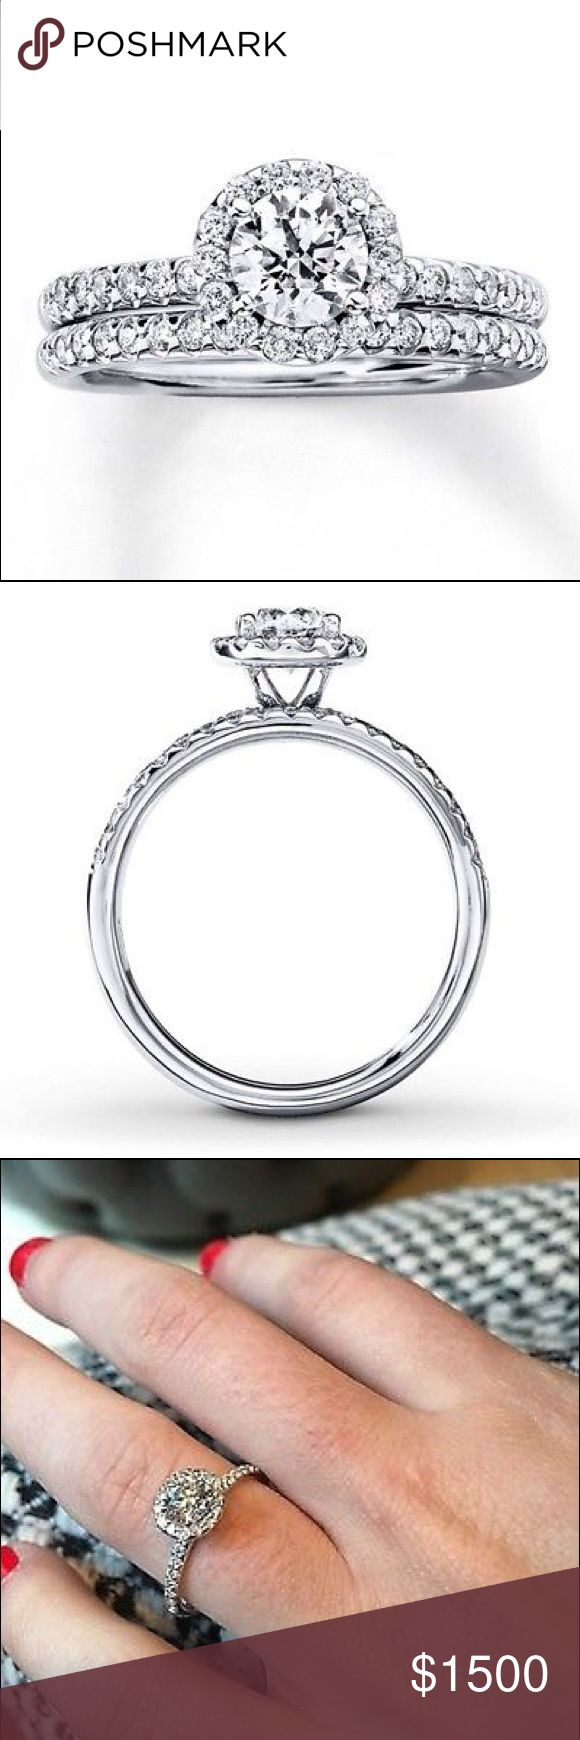 SALE Sterling Jewelers .9 ct  14K White Gold Ring Absolutely stunning round cut halo diamond ring. Real stones. Appraises for $3000. Wedding band not included. I'd be happy to answer any questions. Can't wait to find this ring a home. :) offers accepted. Jewelry Rings